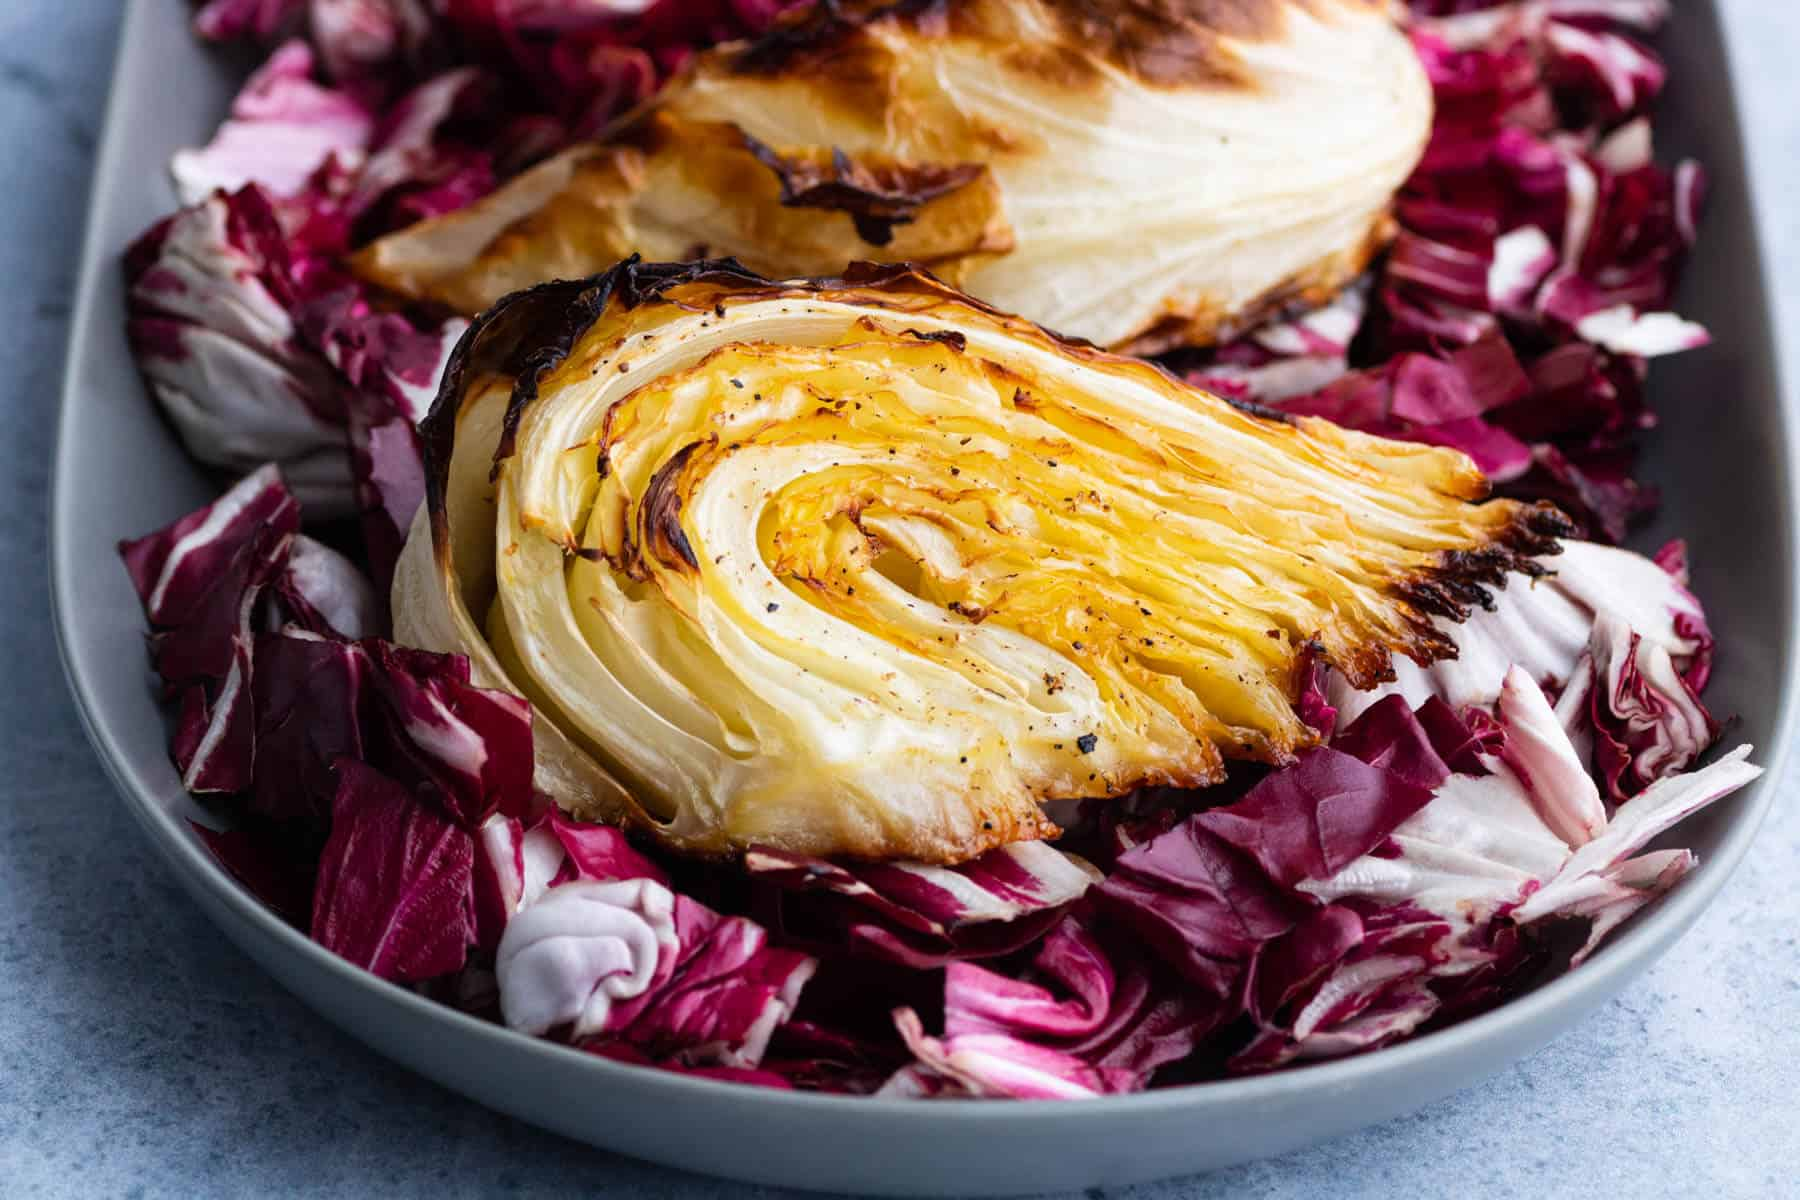 A platter holds a wedge of roasted cabbage on a bed of purple radicchio.